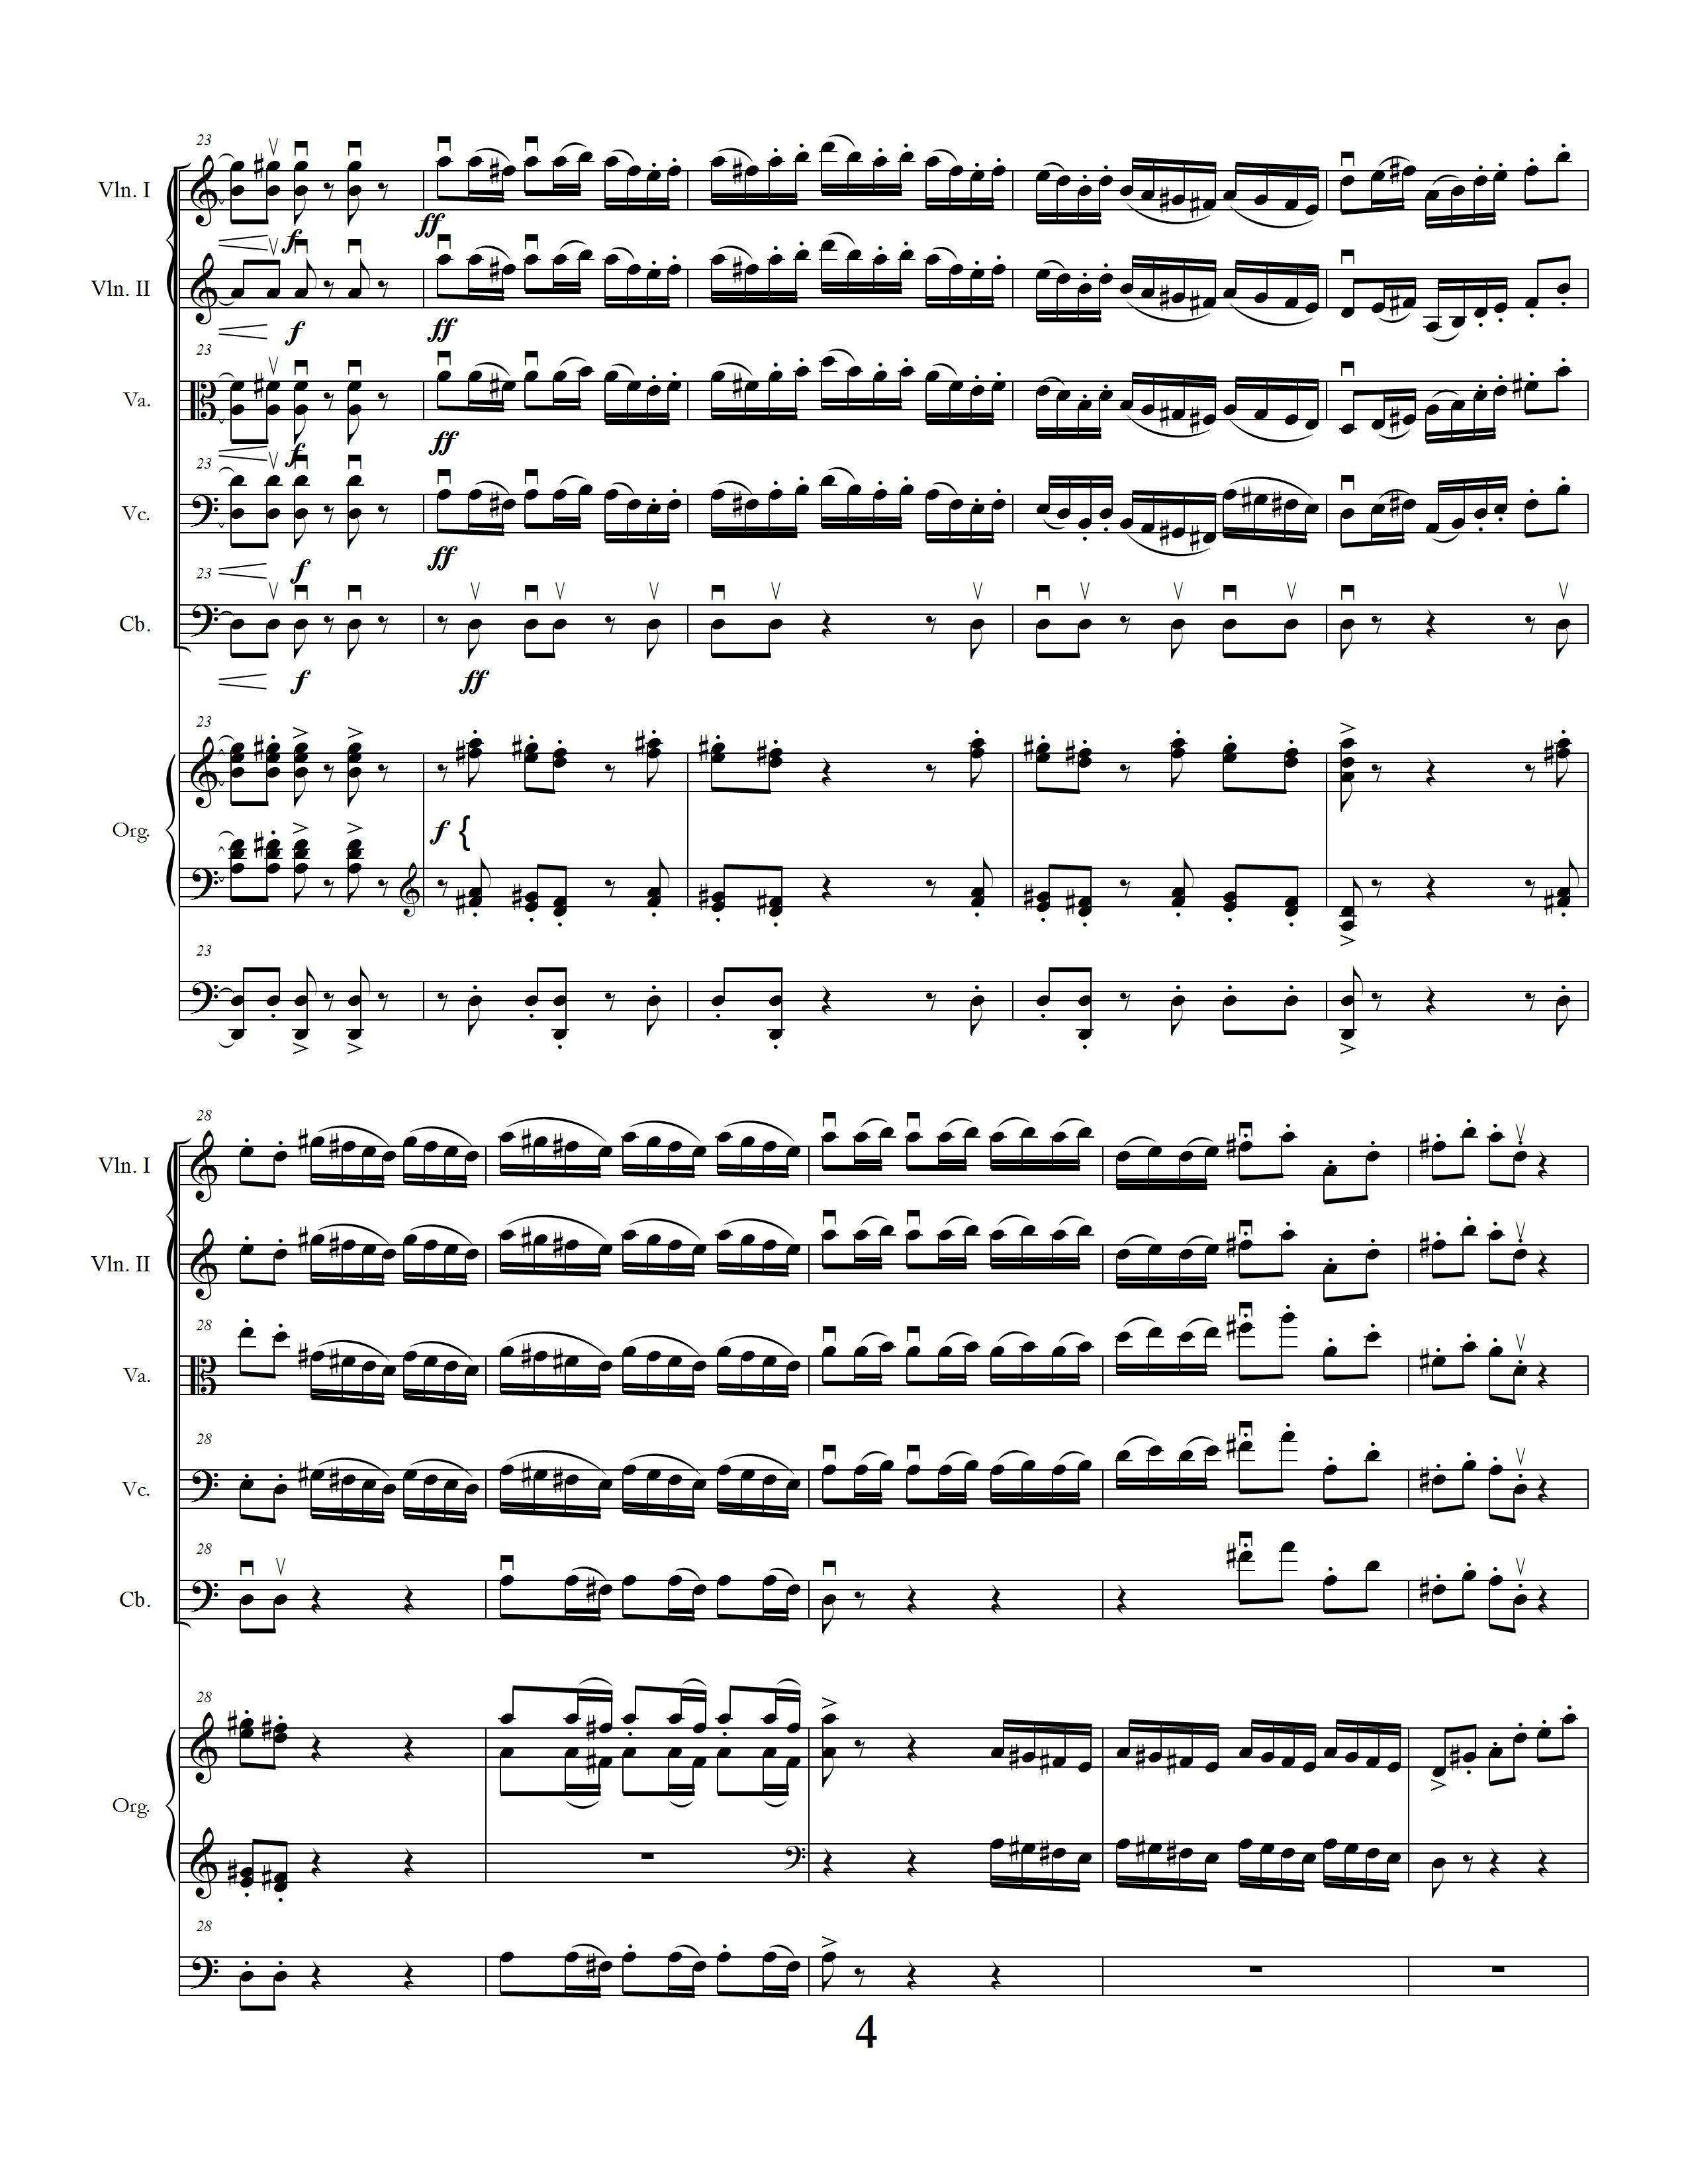 Sinfonia Concertante page four